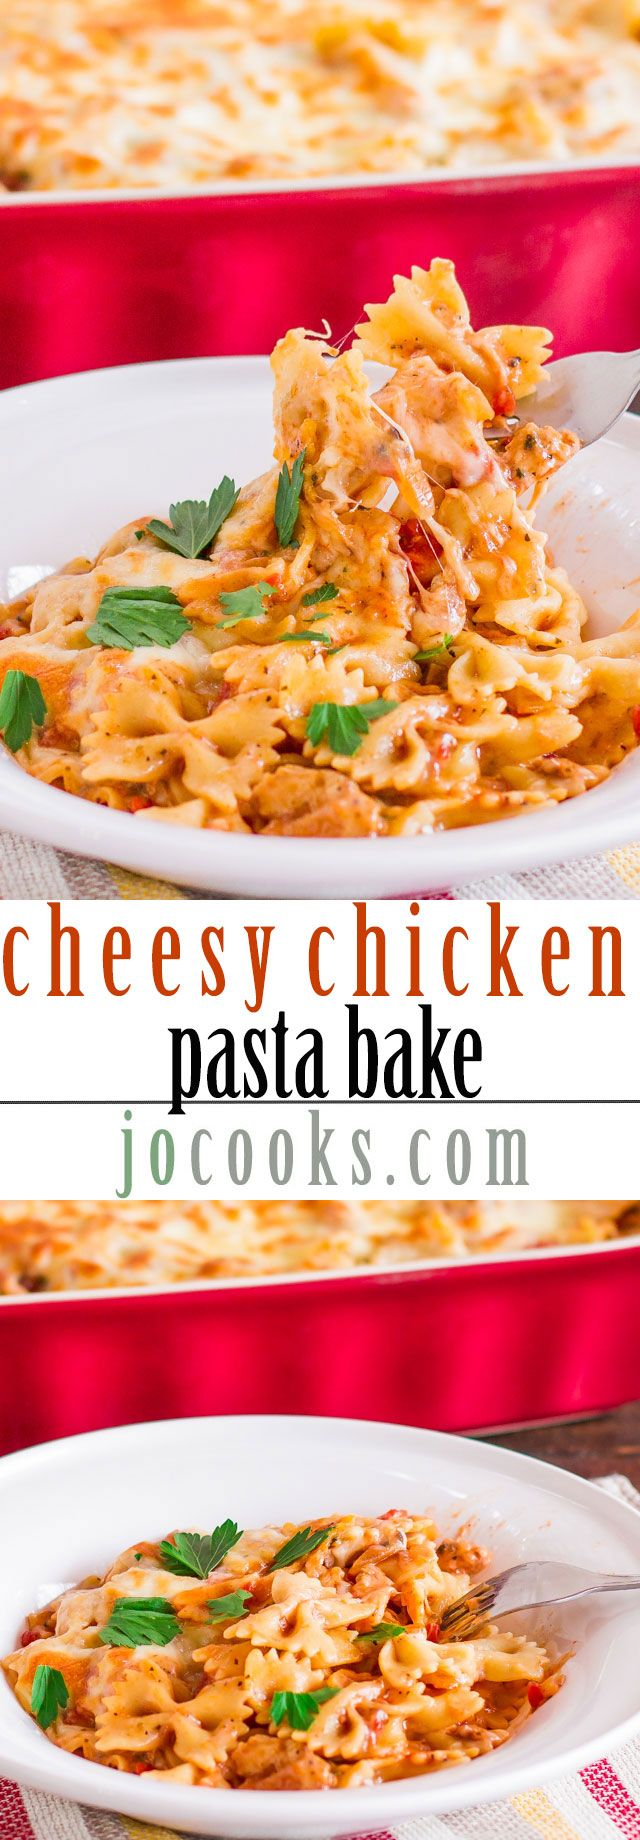 Cheesy Chicken Pasta Bake -- this is going to be such a hit with the kids! http://www.jocooks.com/main-courses/poultry-main-courses/cheesy-chicken-pasta-bake/